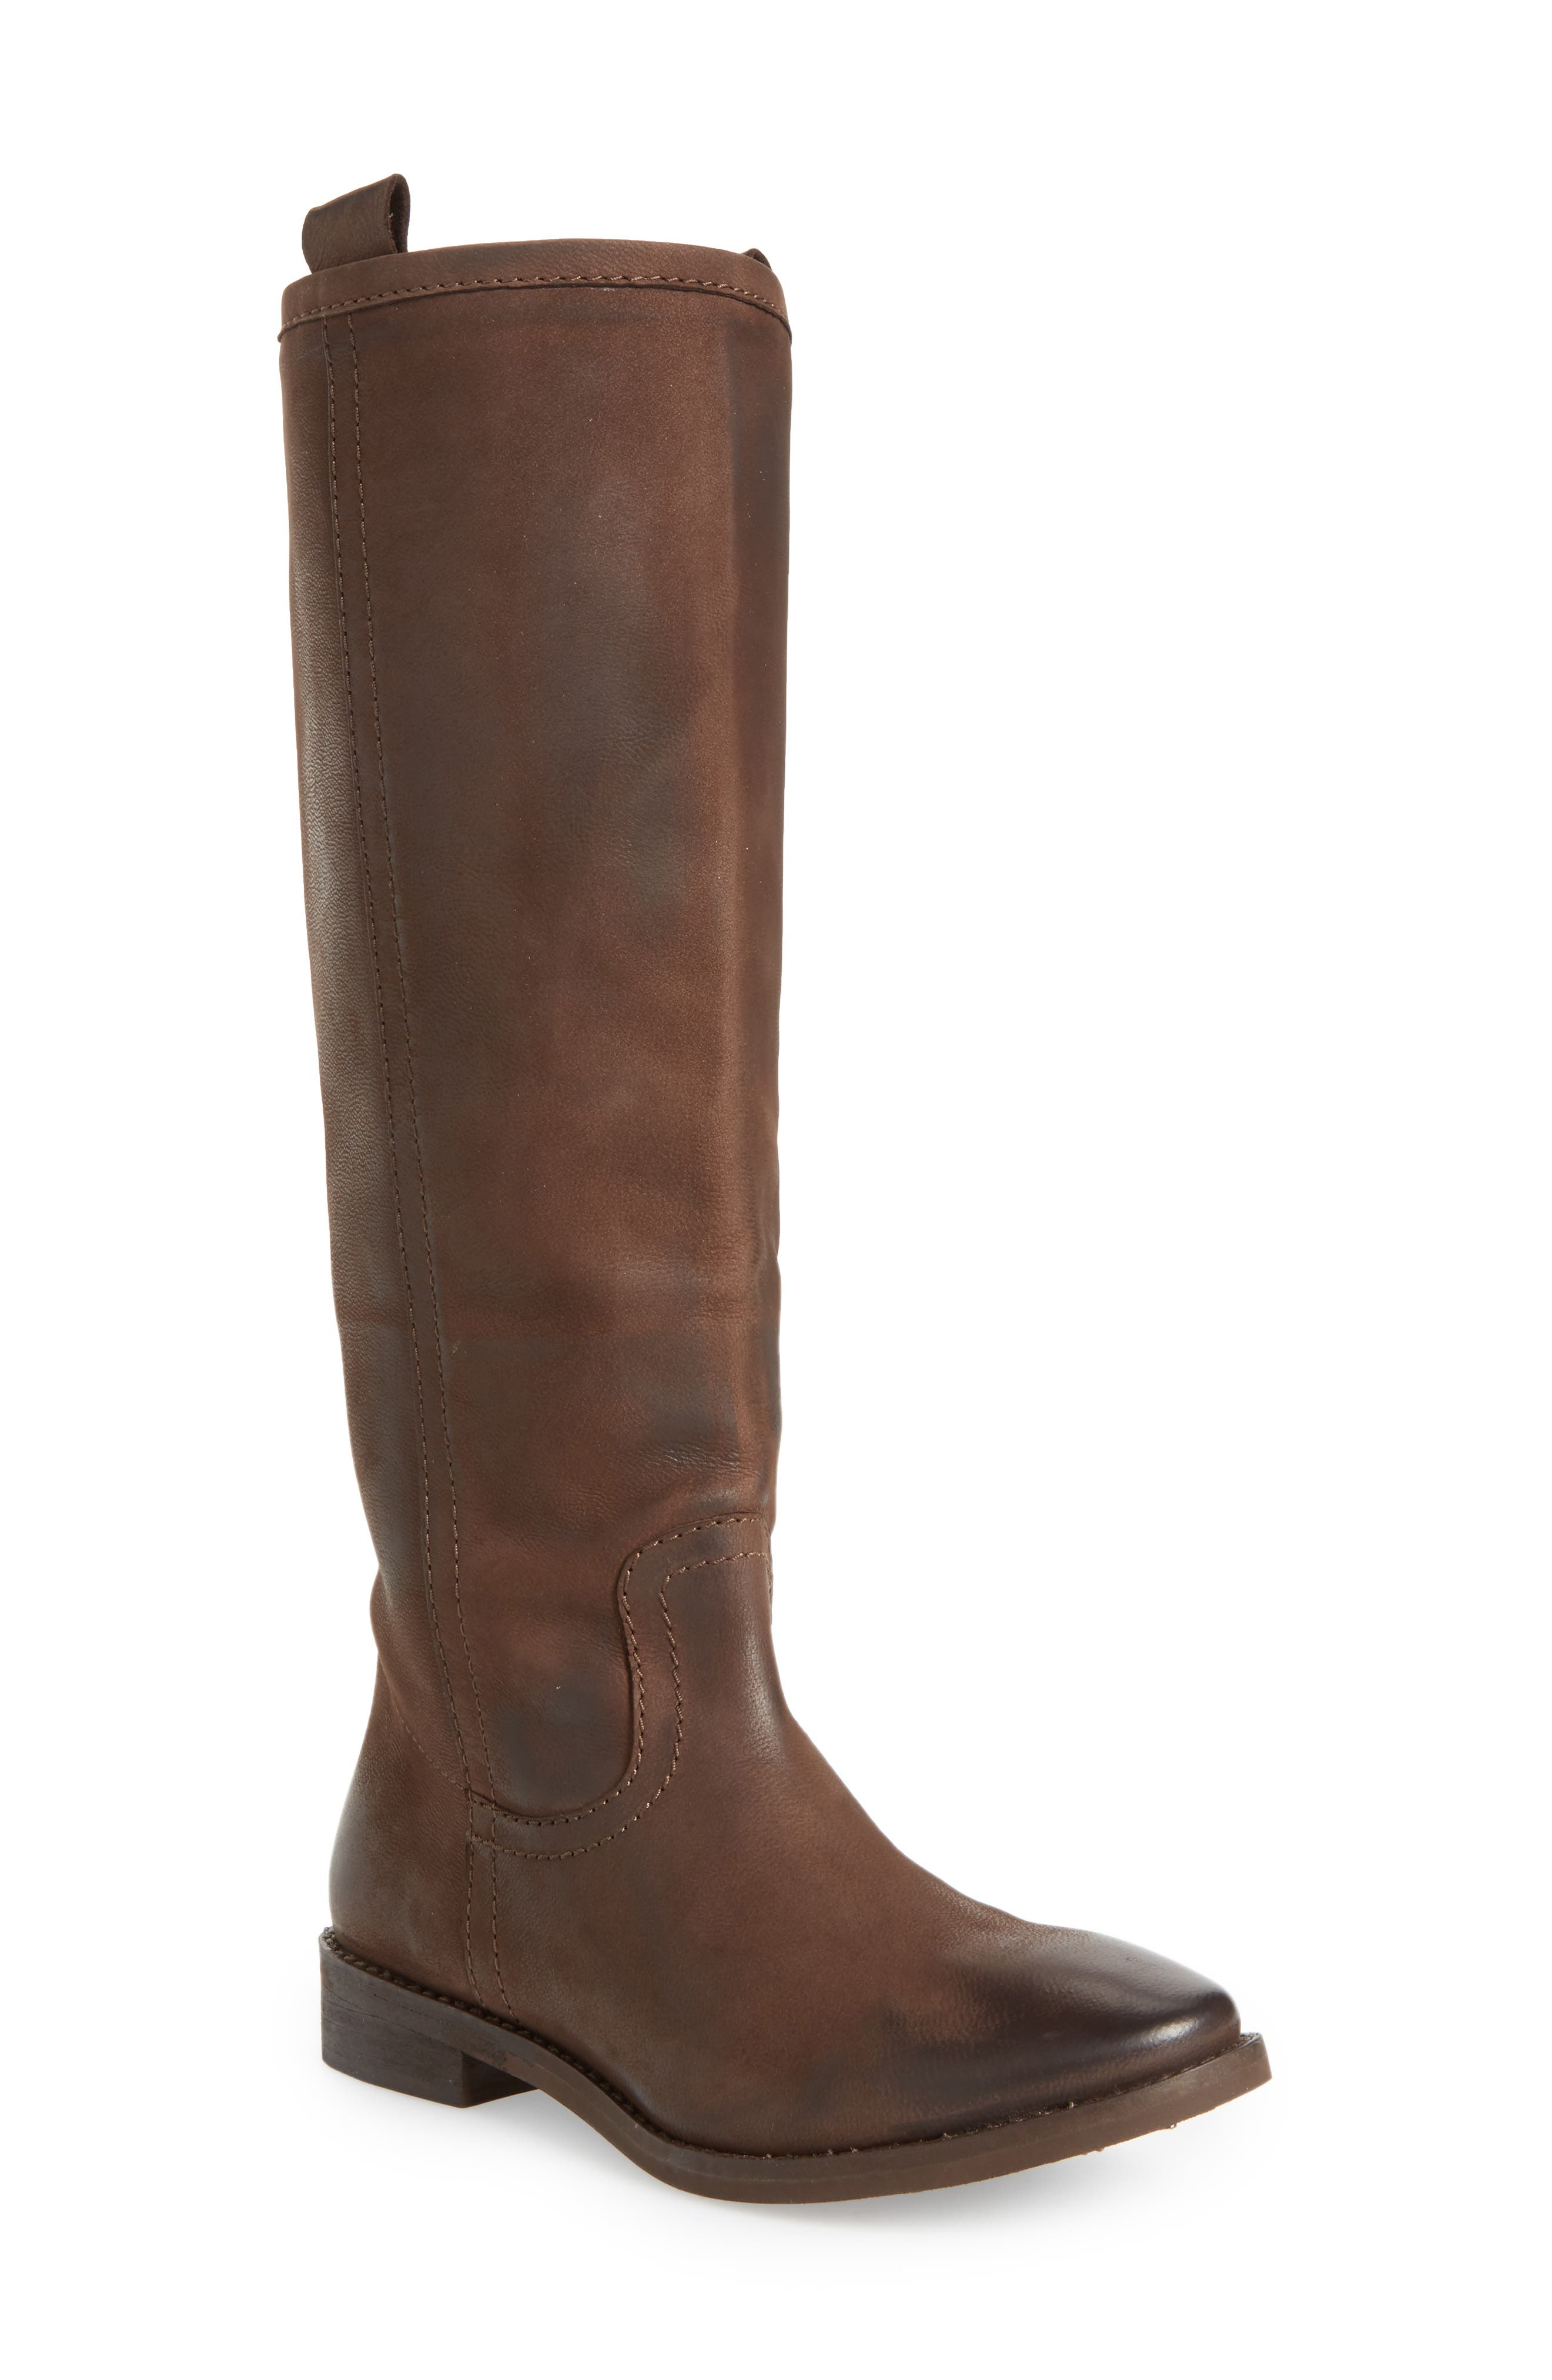 Alternate Image 1 Selected - Seychelles Drama Riding Boot (Women)